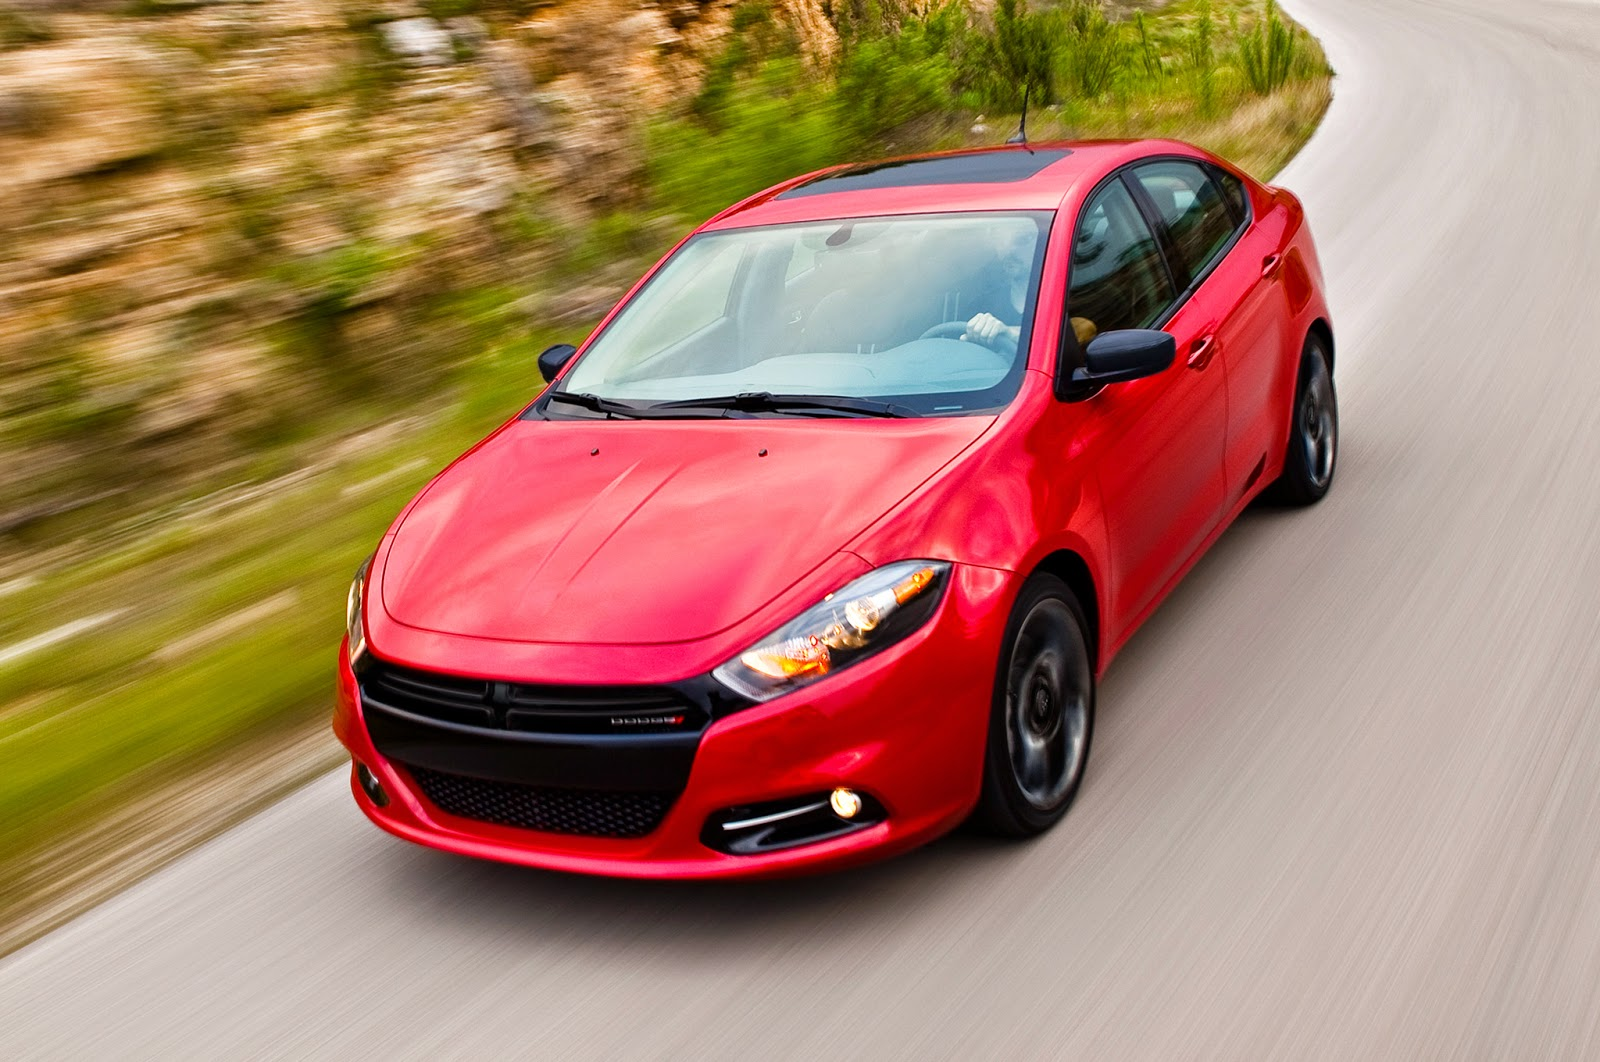 2015 dodge dart car review and modification. Black Bedroom Furniture Sets. Home Design Ideas